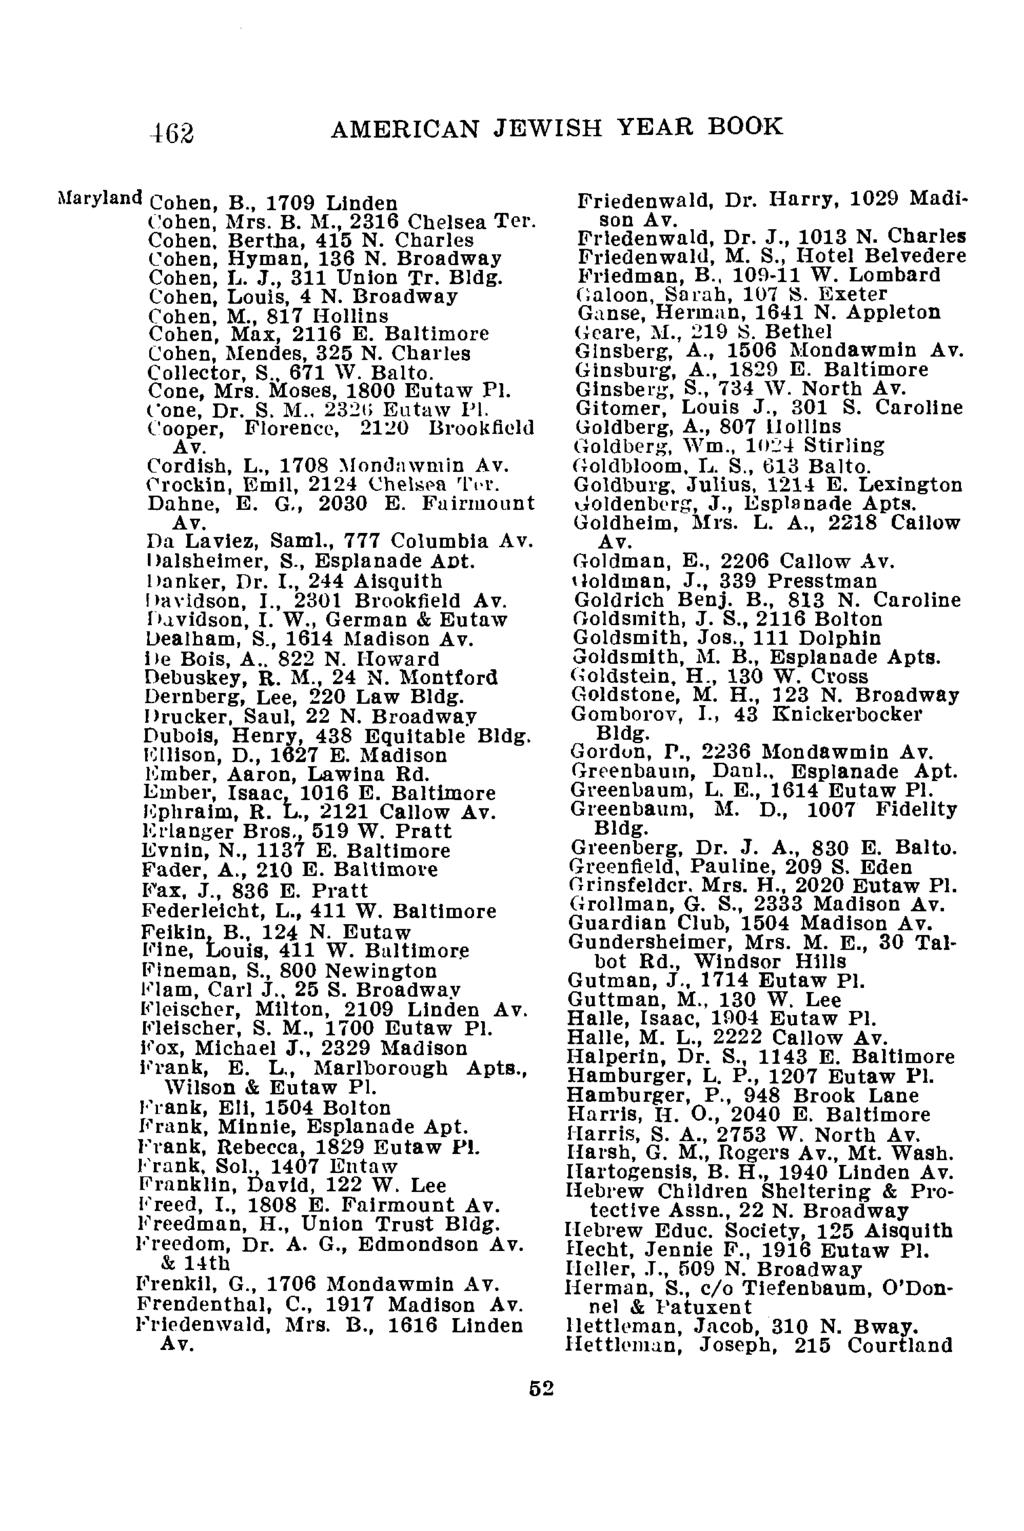 462 AMERICAN JEWISH YEAR BOOK Maryland Cohen, B., 1709 Linden Cohen, Mrs. B. M., 2316 Chelsea Ter. Cohen, Bertha, 415 N. Charles Cohen, Hyman, 136 N. Broadway Cohen, L. J., 311 Union Tr. Bldg.